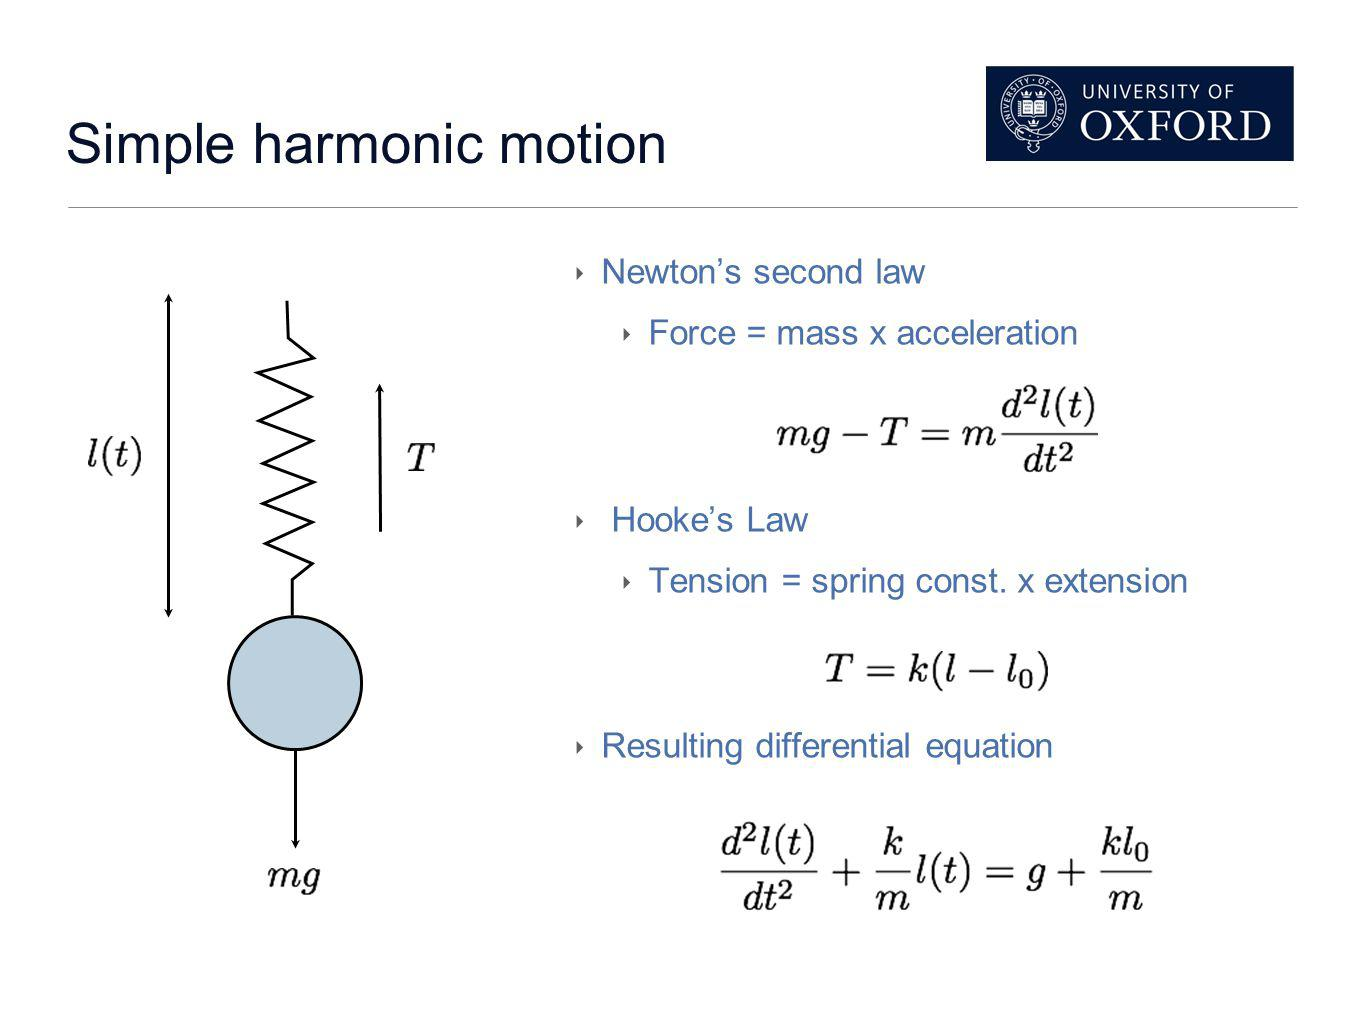 simple harmonic motion Re-write in terms of the displacement from equilibrium which is the description of simple harmonic motion The solution is with constants determined by the initial displacement and velocity The period of oscillations is